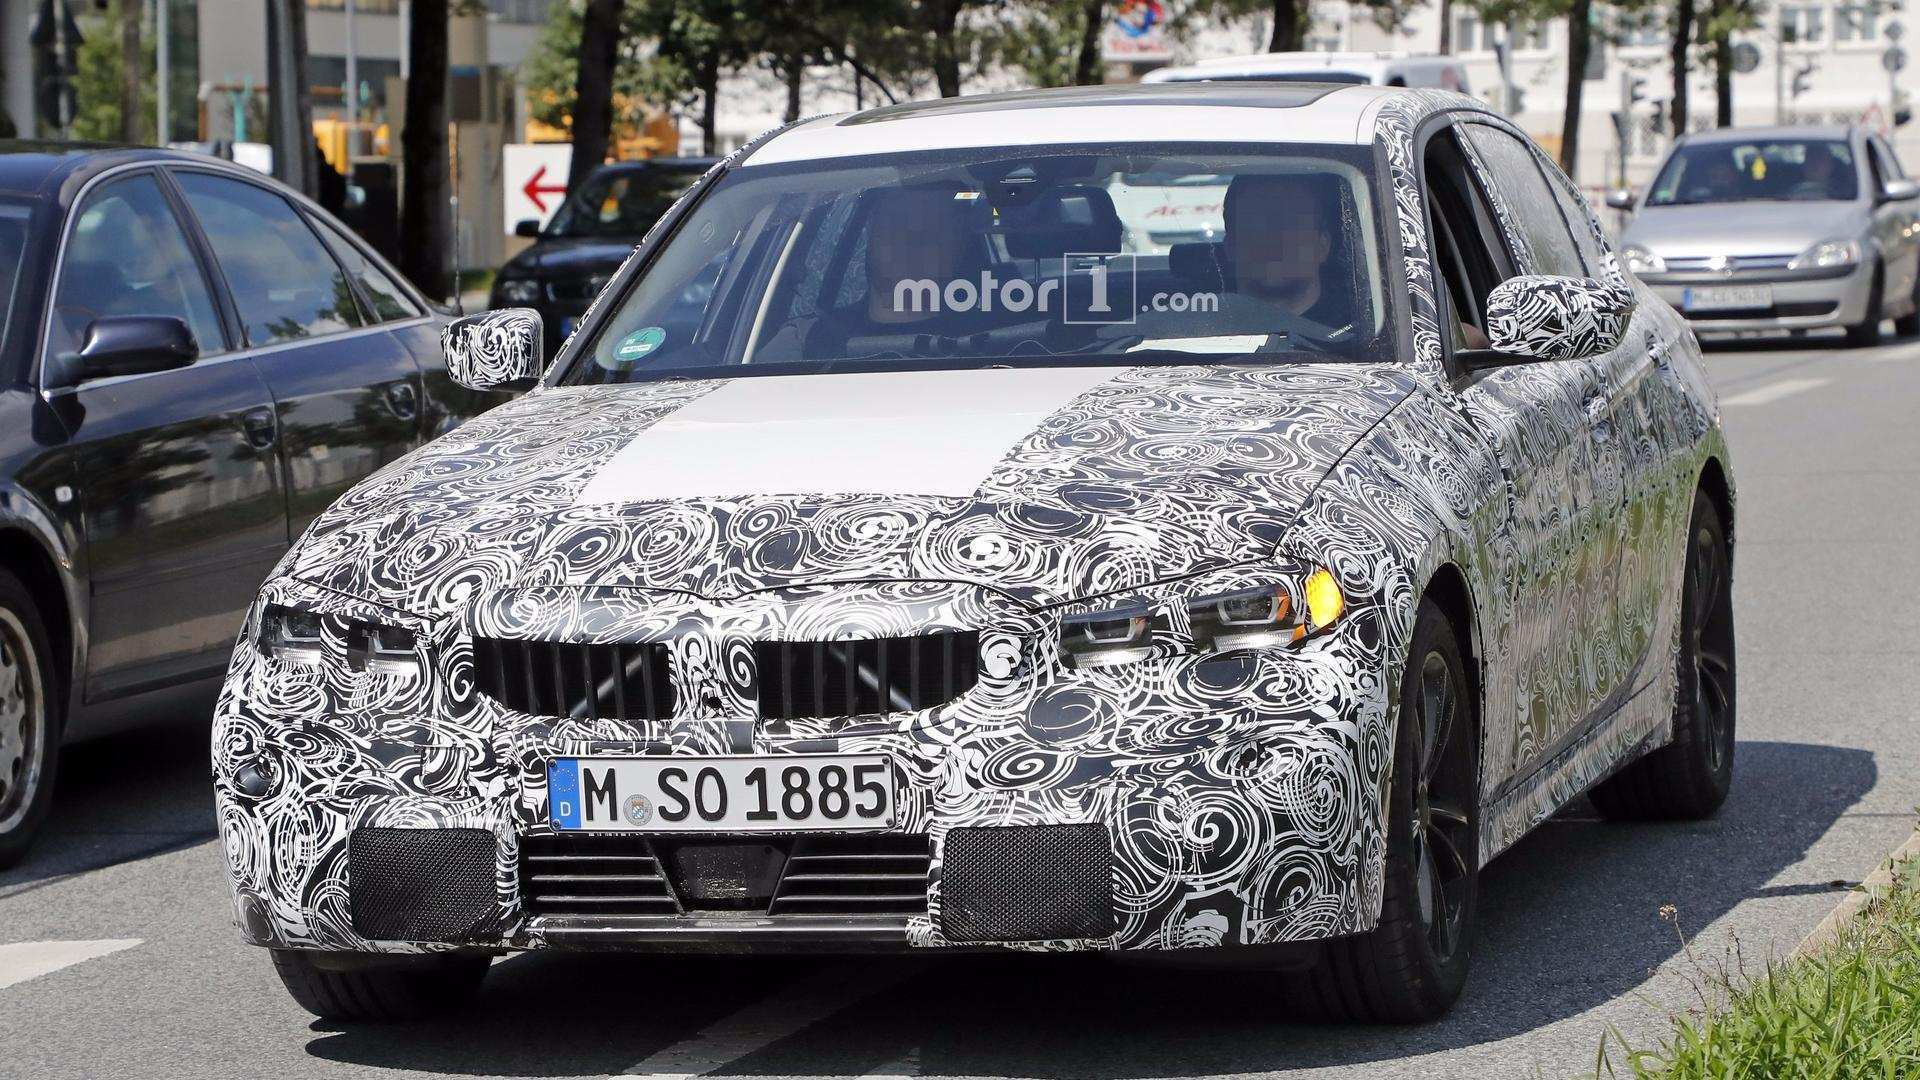 20 New 2019 Bmw 3 Series Electric Spy Shoot Specs for 2019 Bmw 3 Series Electric Spy Shoot